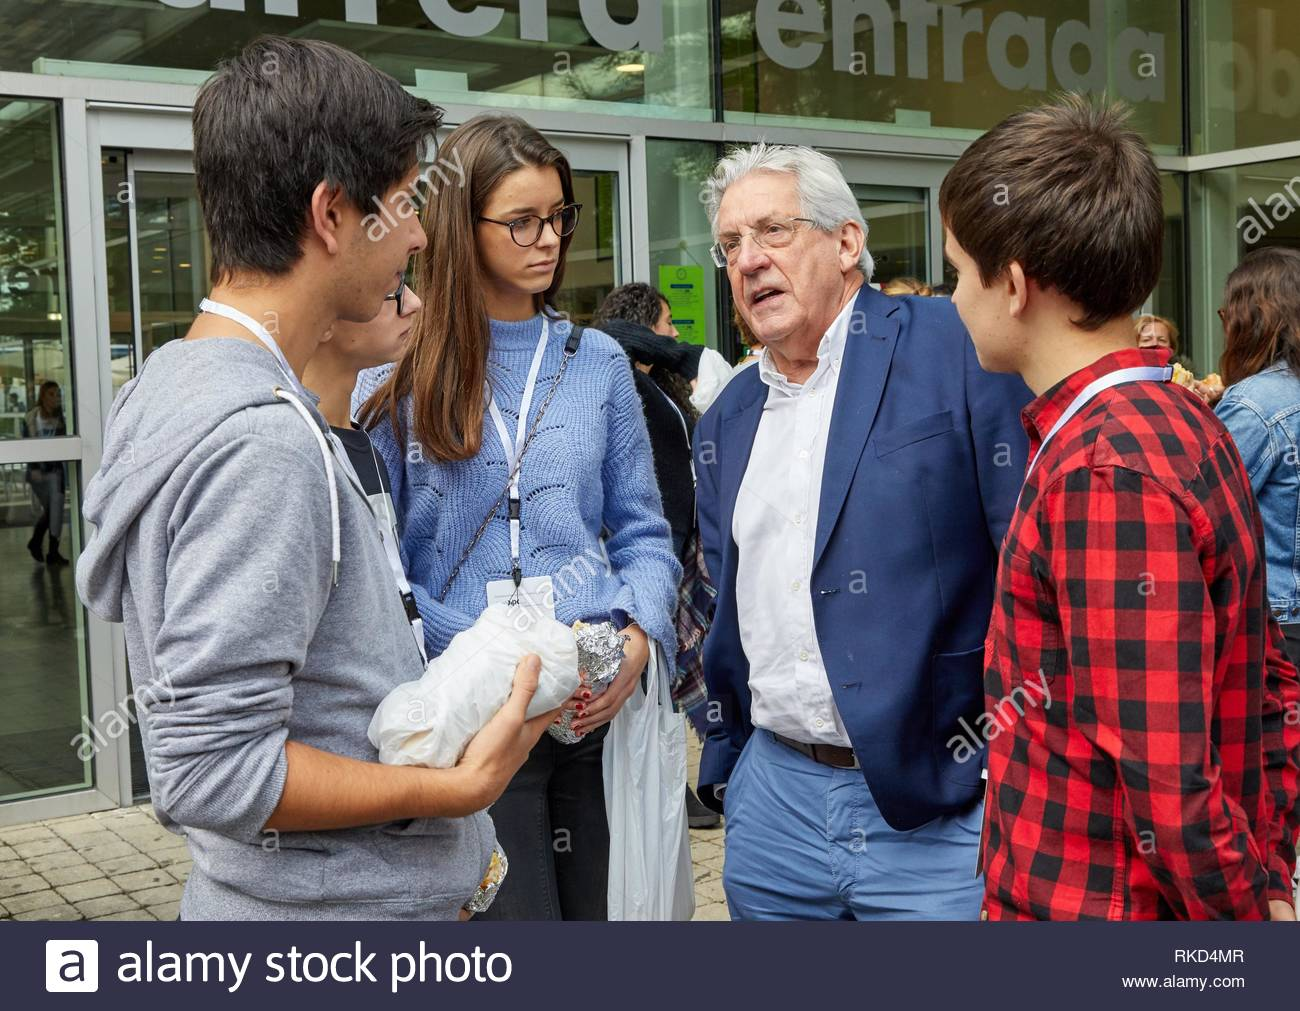 Pedro Miguel Echenique Landiribar (Professor of Condensed Matter Physics from the University of the Basque Country).X edition of 'Top @ - Stock Image